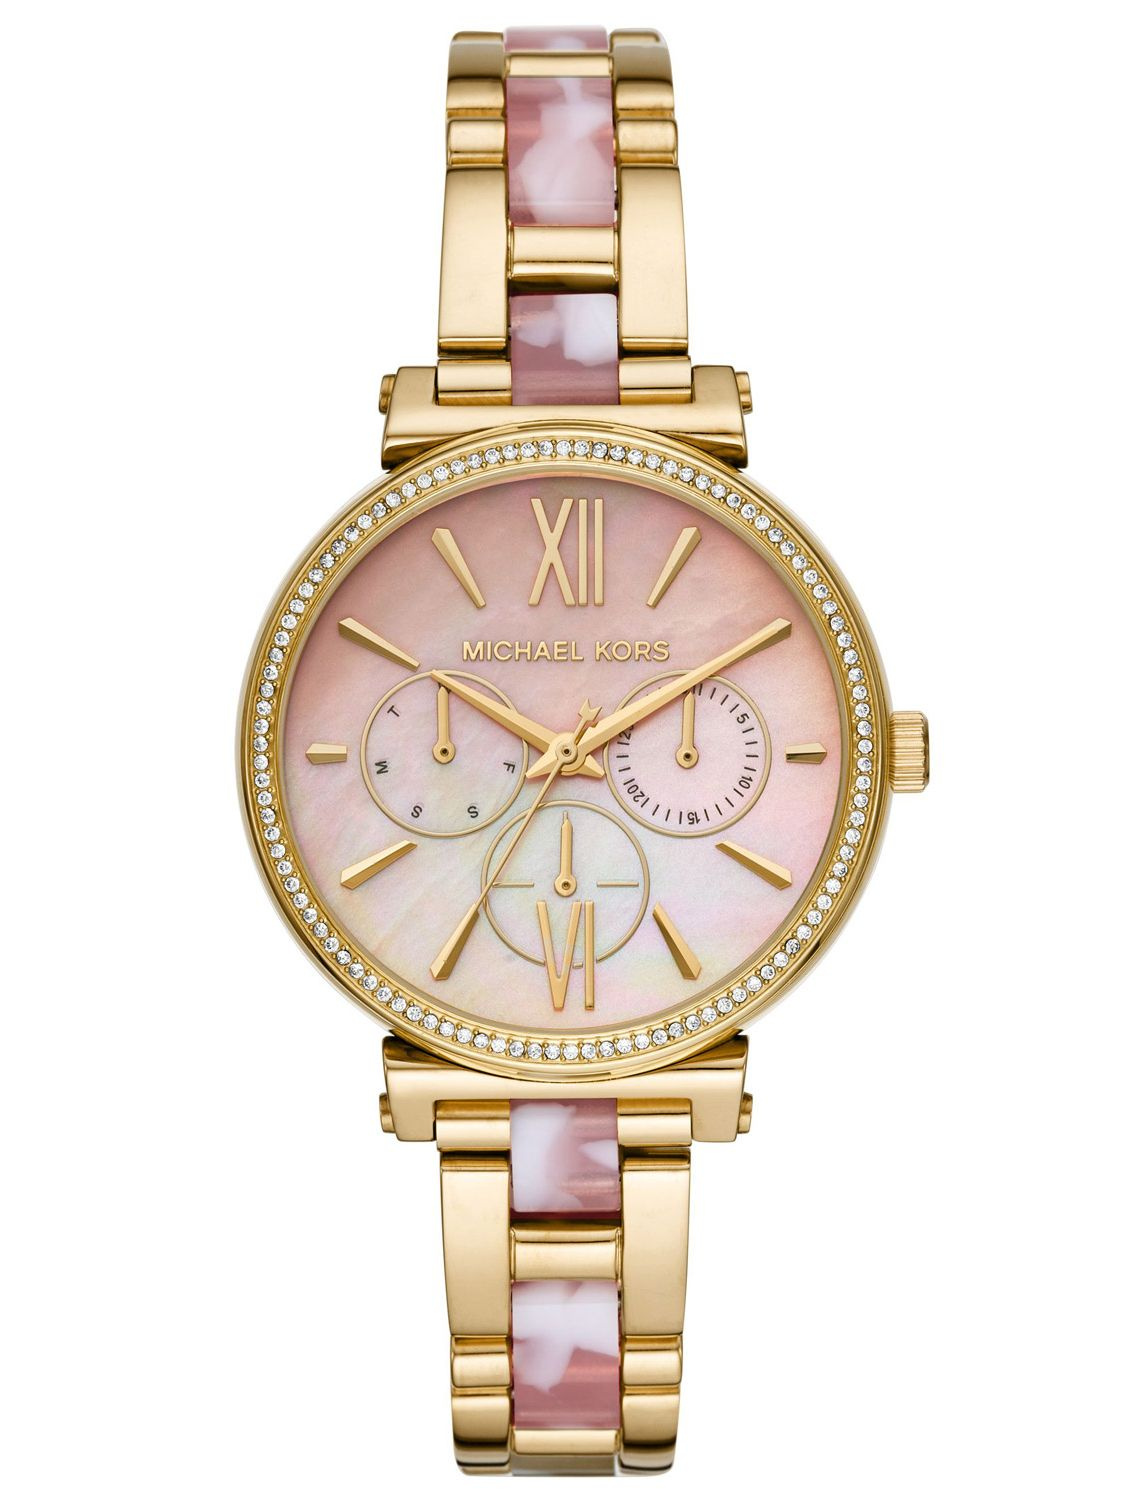 09ab96f7faa84 Michael Kors MK4344 Ladies´ Watch Multifunction Sofie Image 1 ...